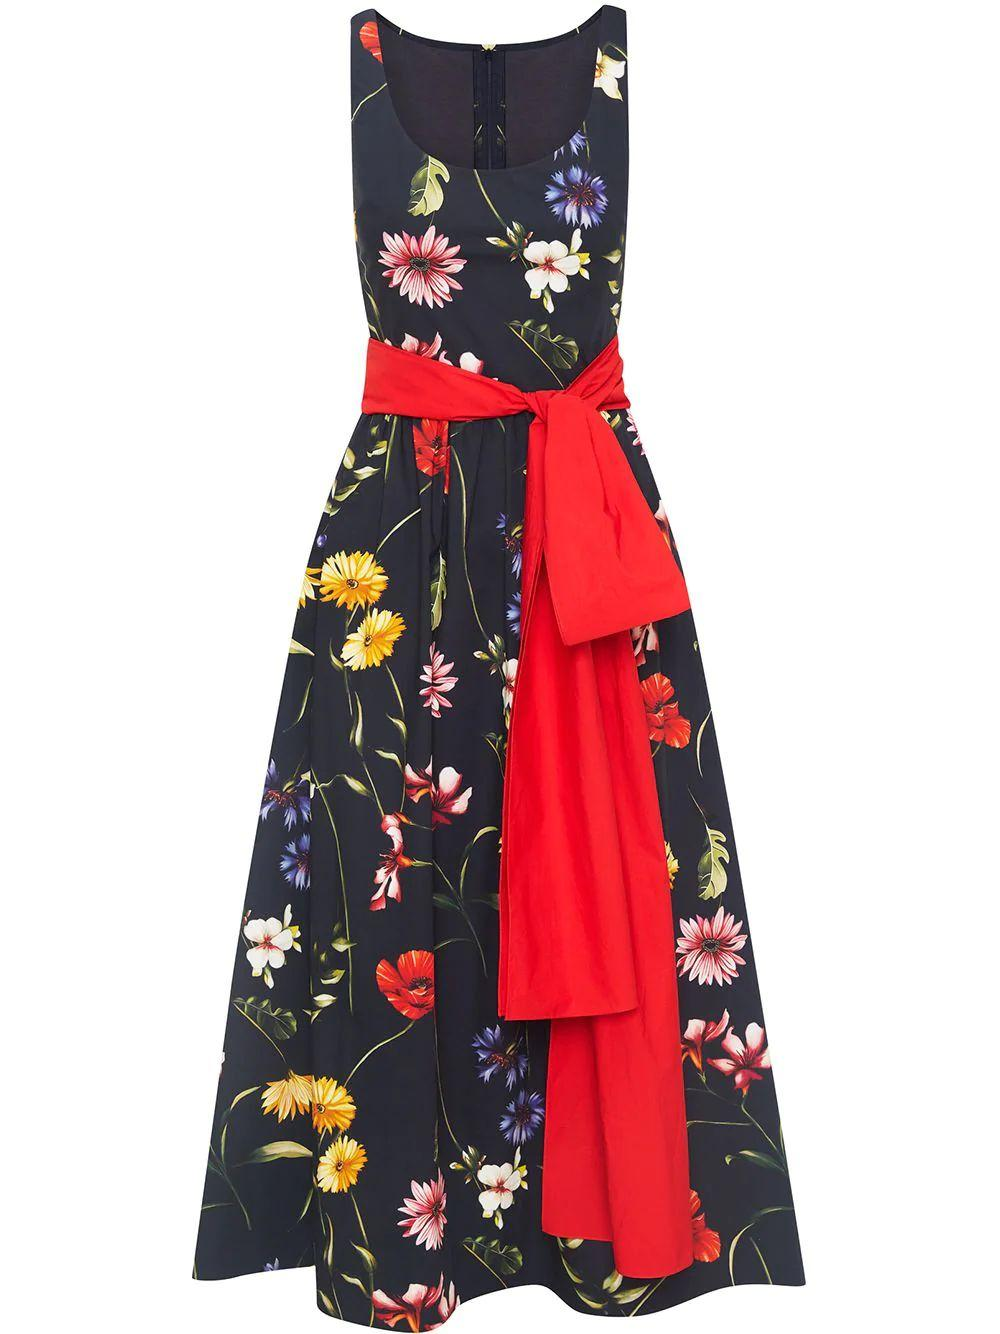 Floral Dress With Bow Detail Item # 21RN219PCF